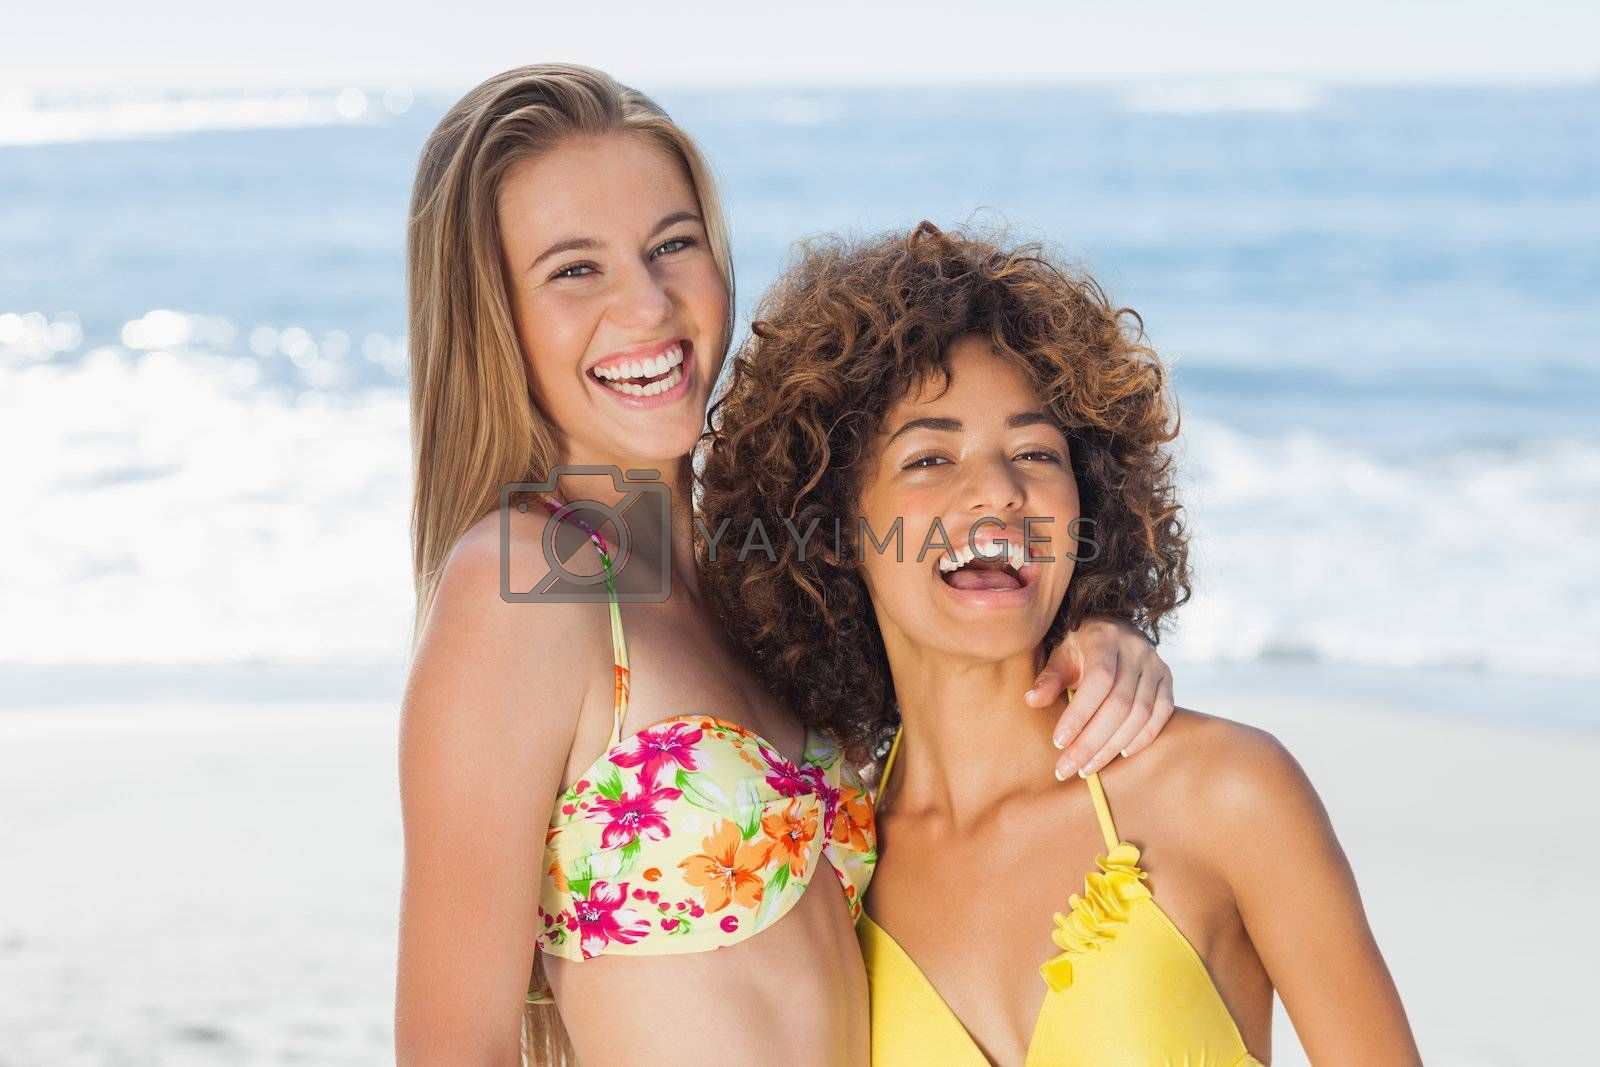 Two smiling friends posing together by Wavebreakmedia